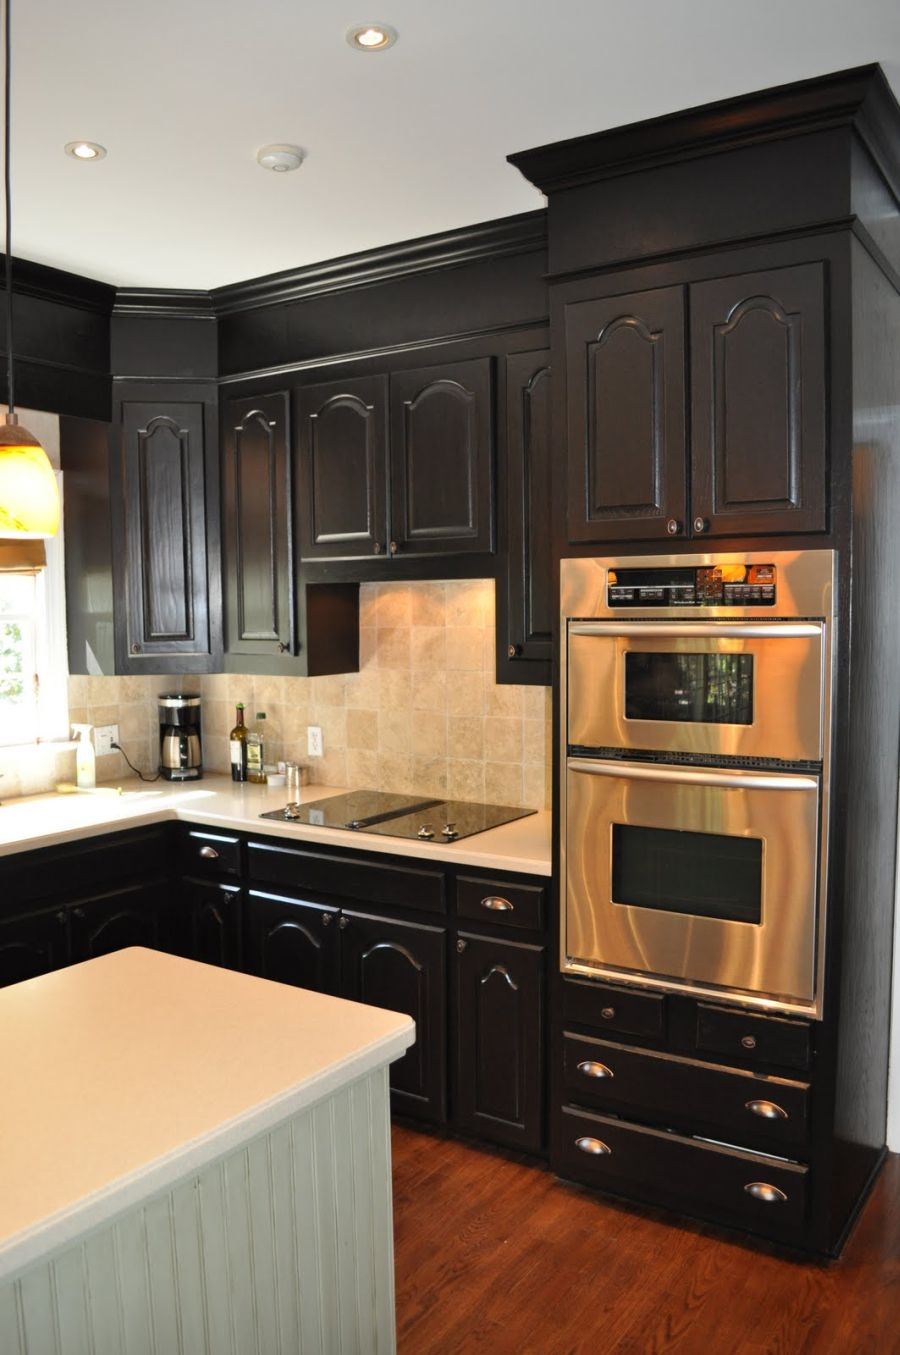 Kitchen paint colors with black cabinets - Black Cabinets With Soffits